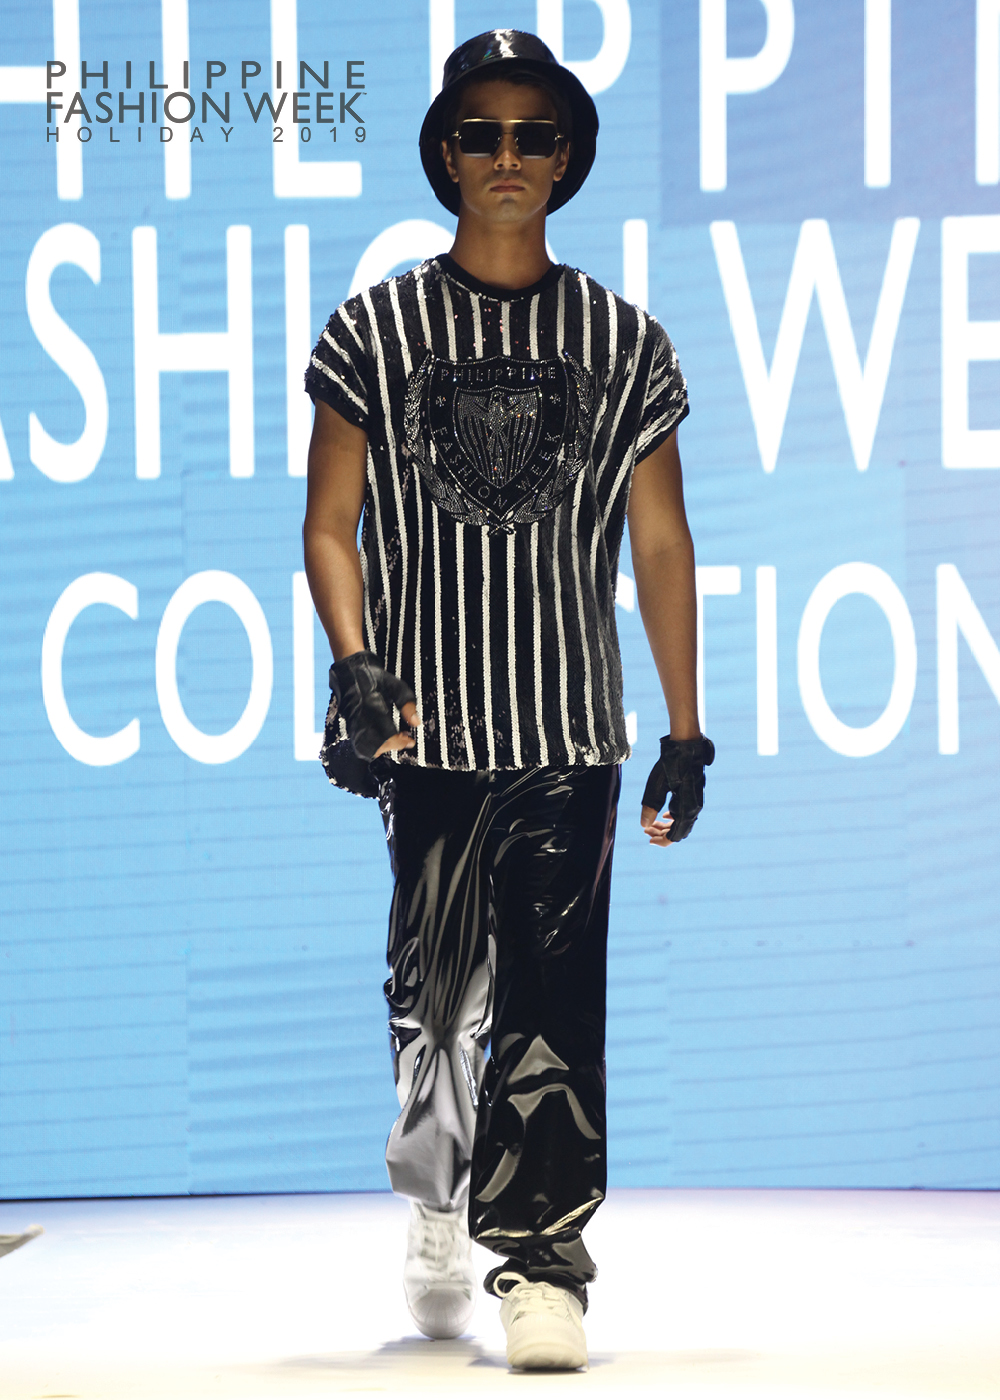 PhFW Collection_web2.jpg